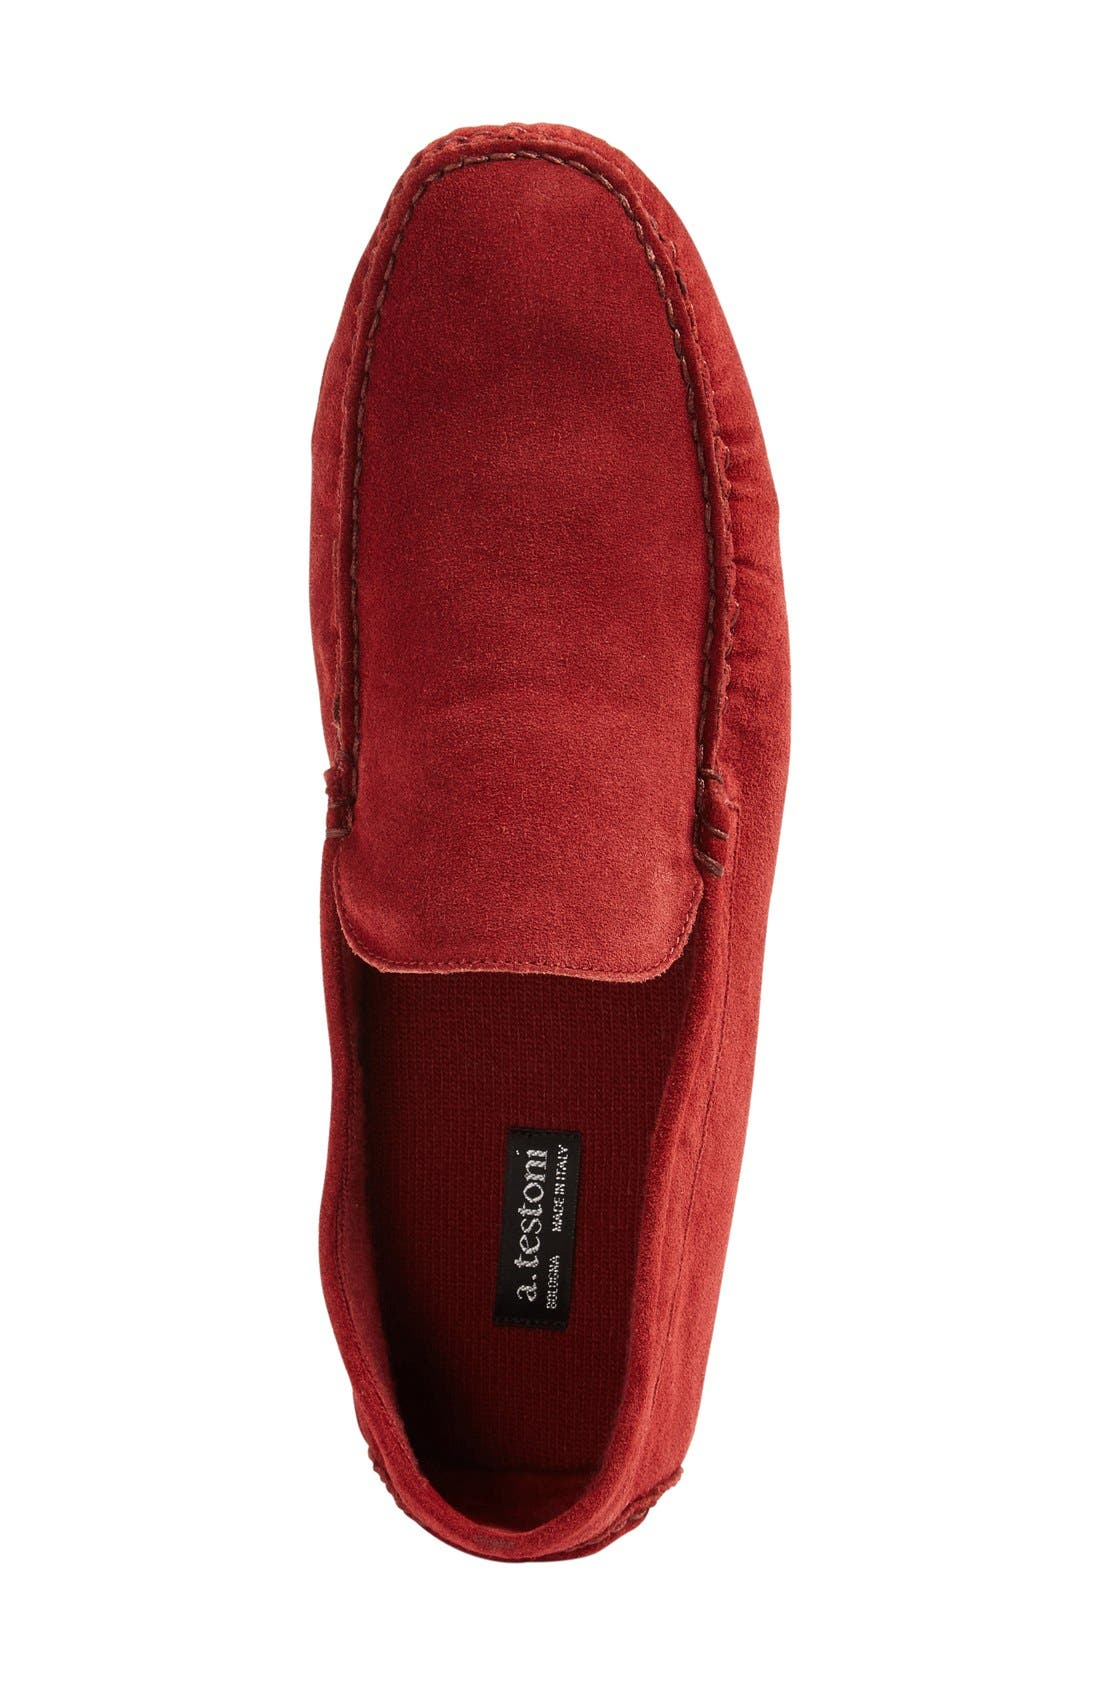 Alternate Image 3  - A. Testoni House Slipper (Men)